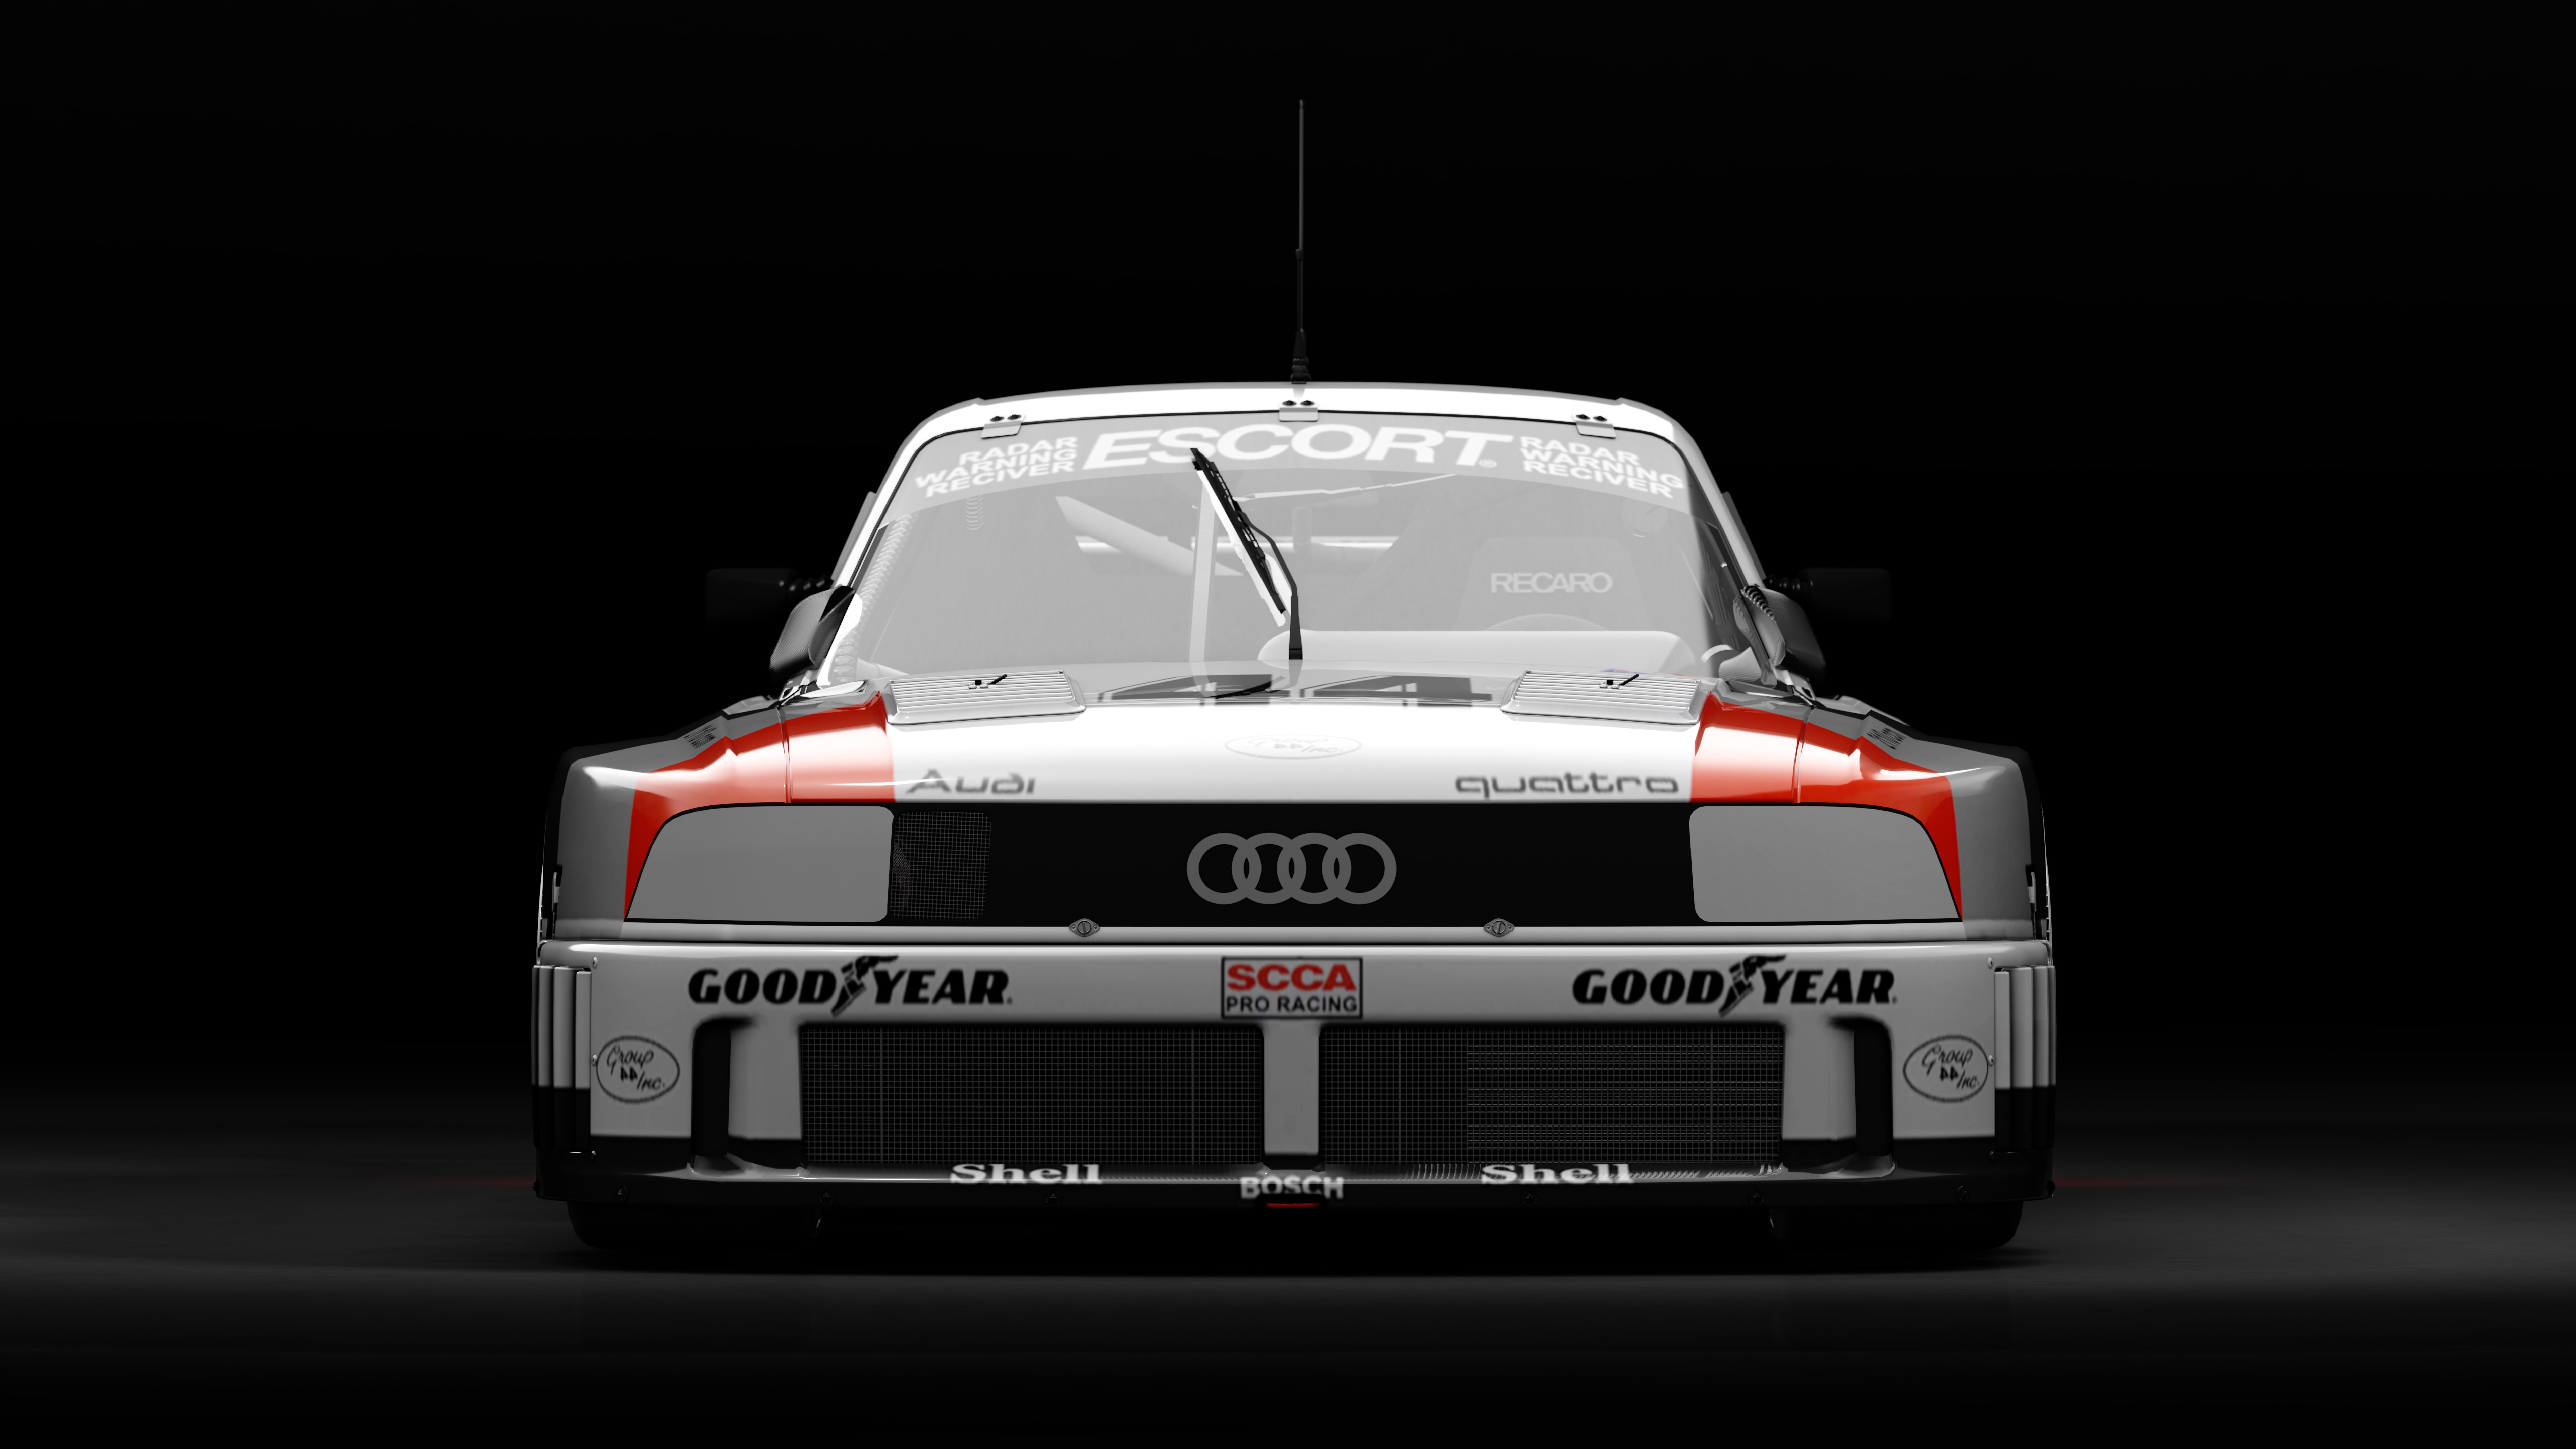 Audi 4k Wallpapers For Your Desktop Or Mobile Screen Free And Easy To Download